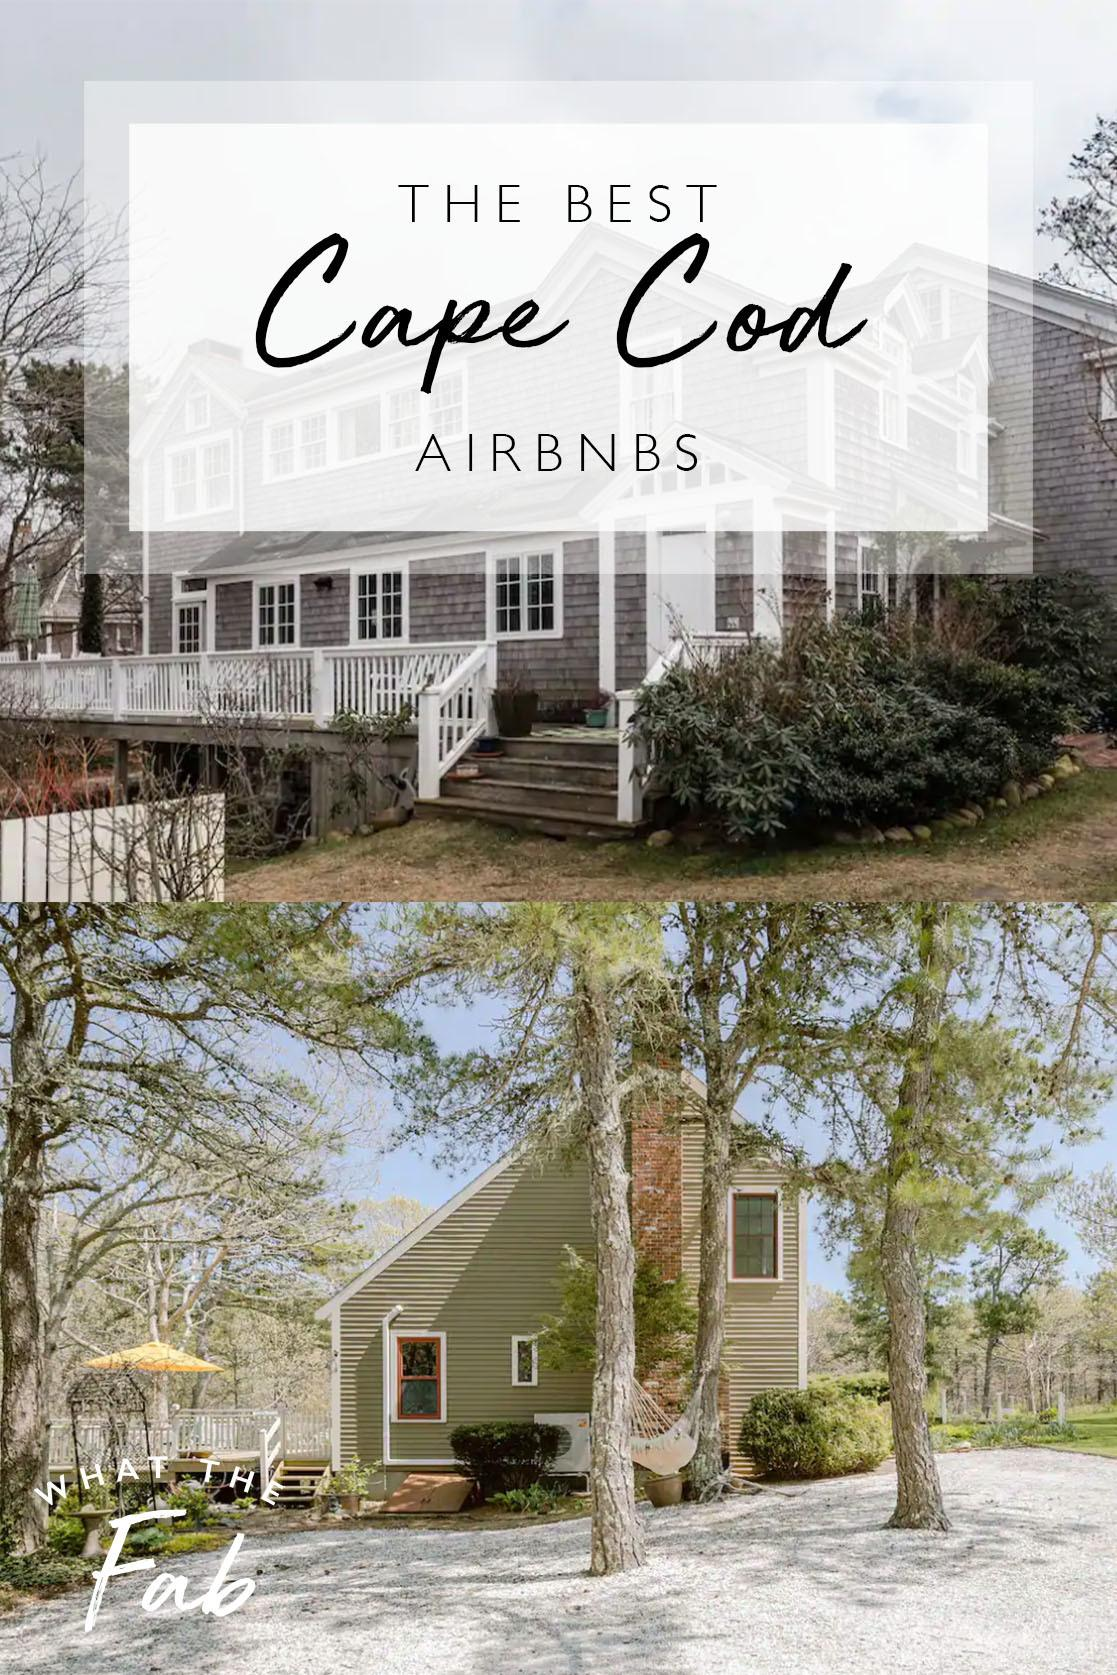 The best Cape Code Airbnbs, by travel blogger What The Fab